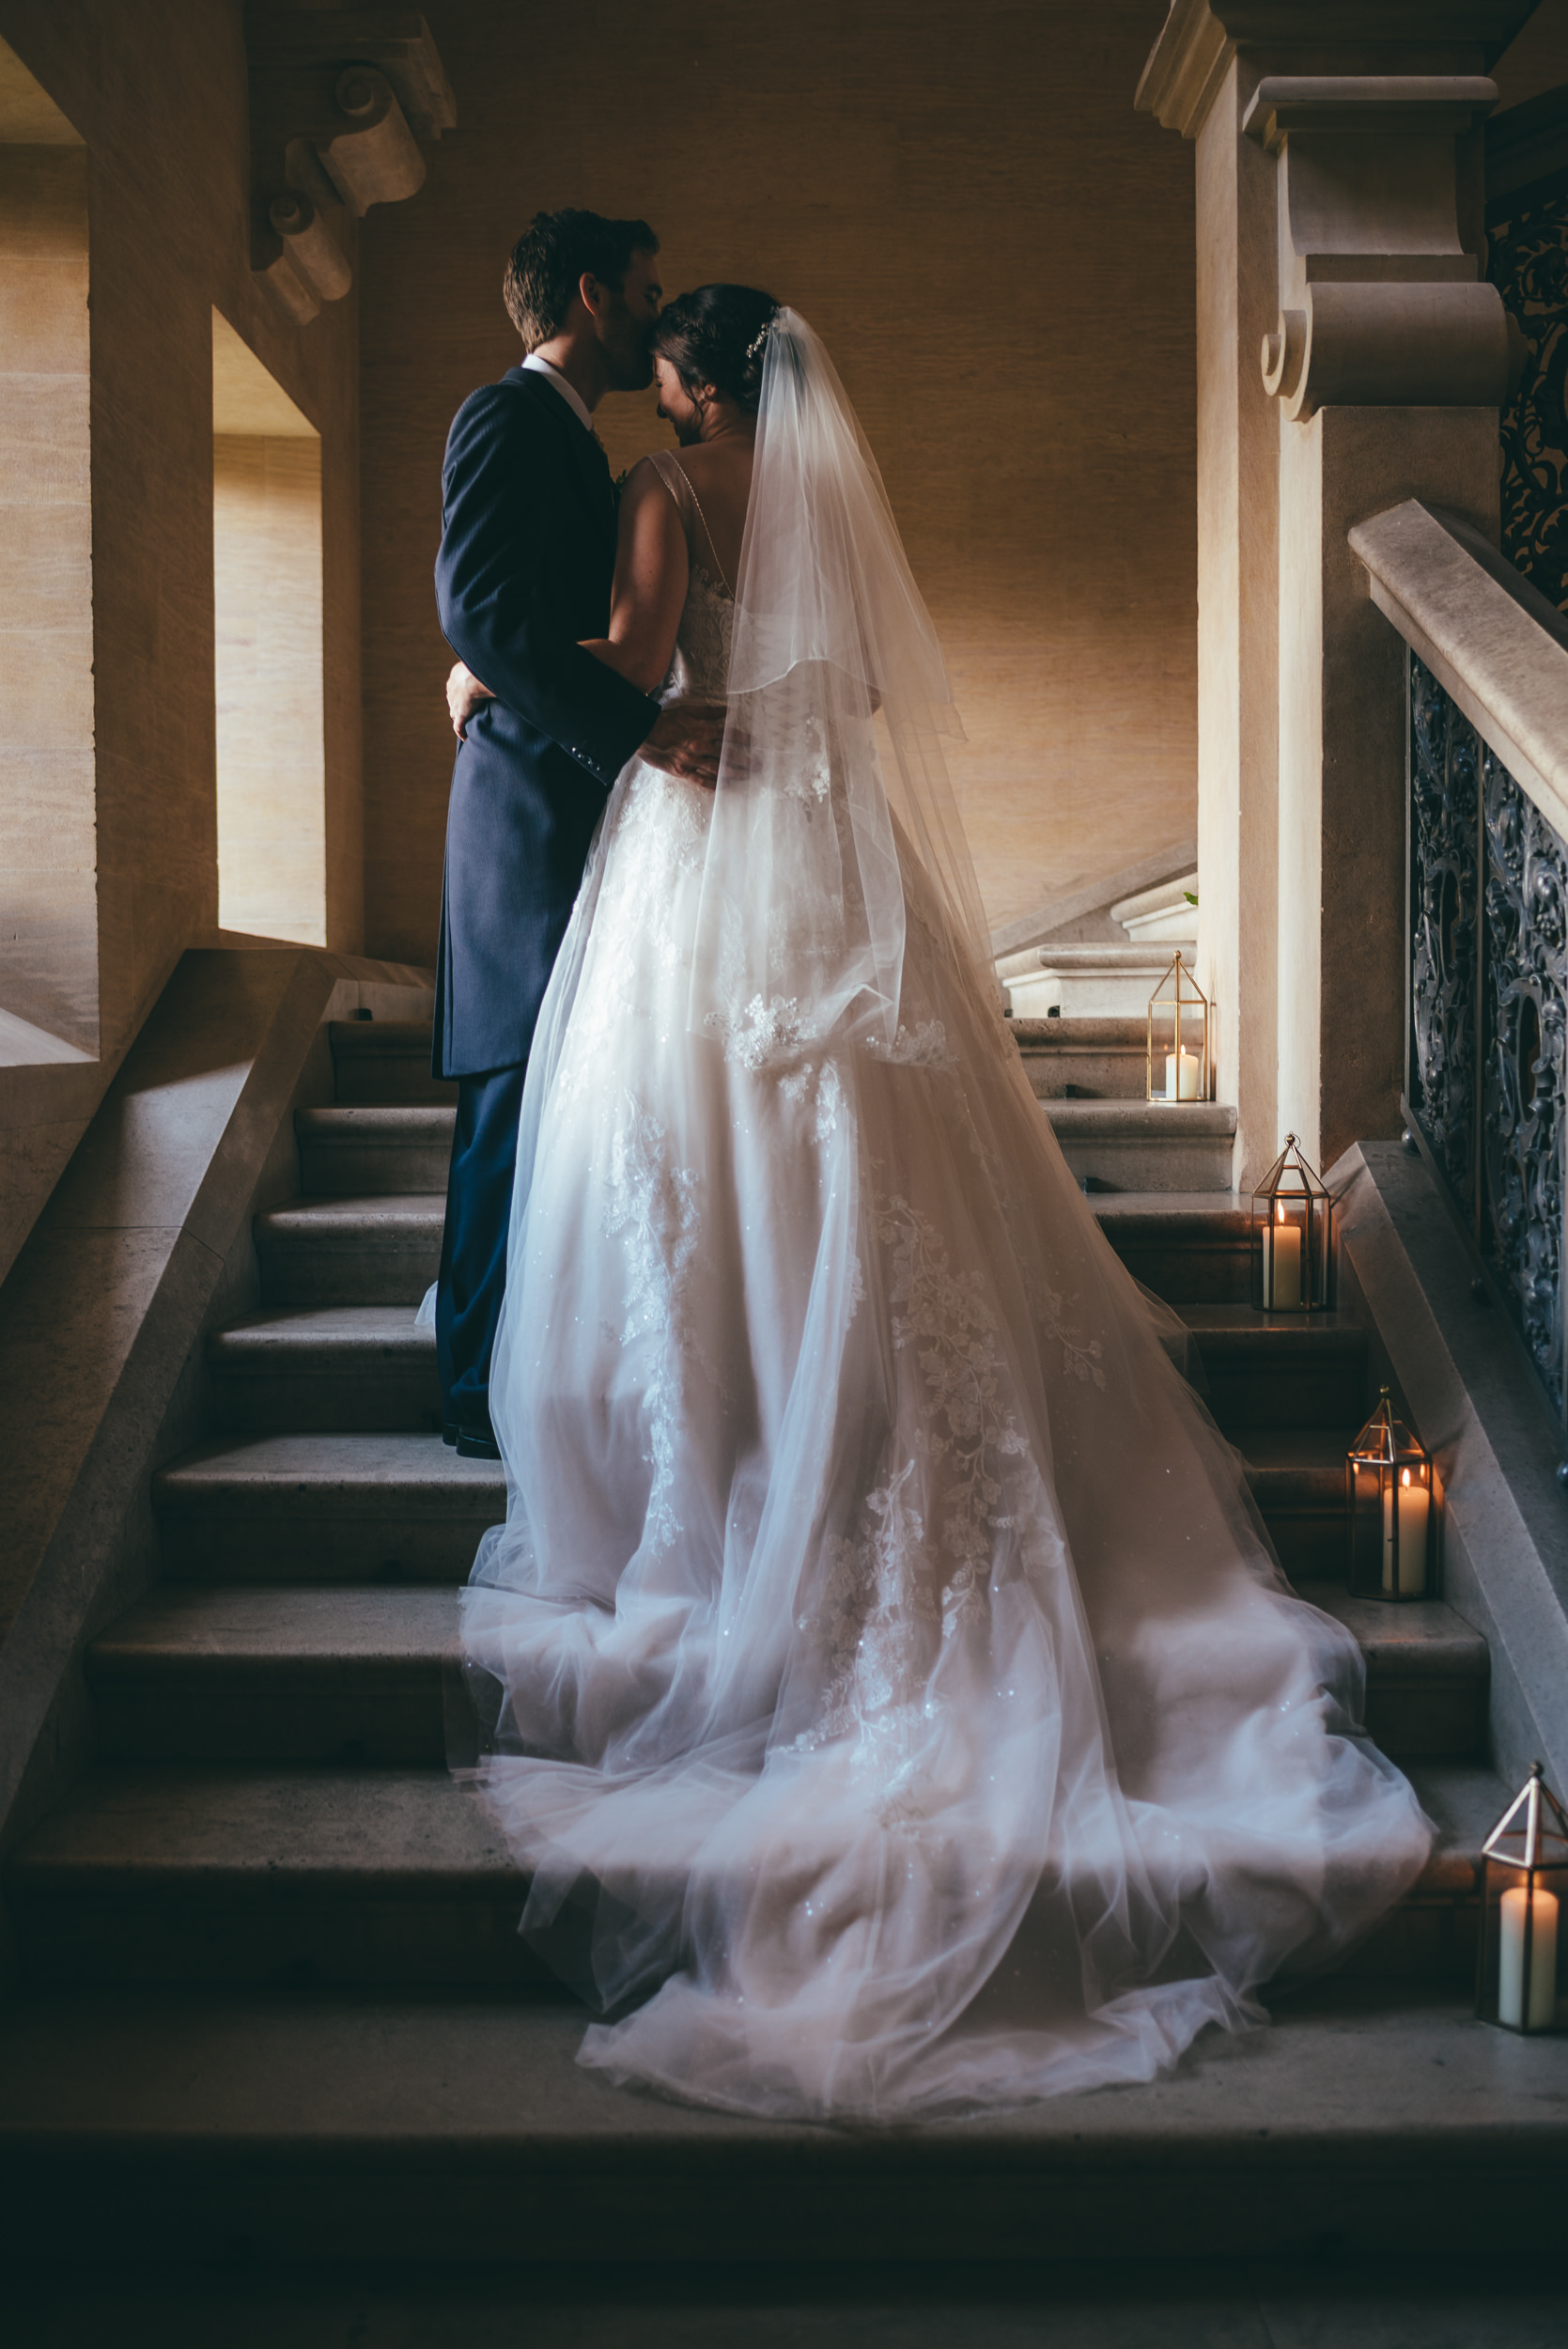 Bride and groom on the stairs at Harlaxton Manor in the window light